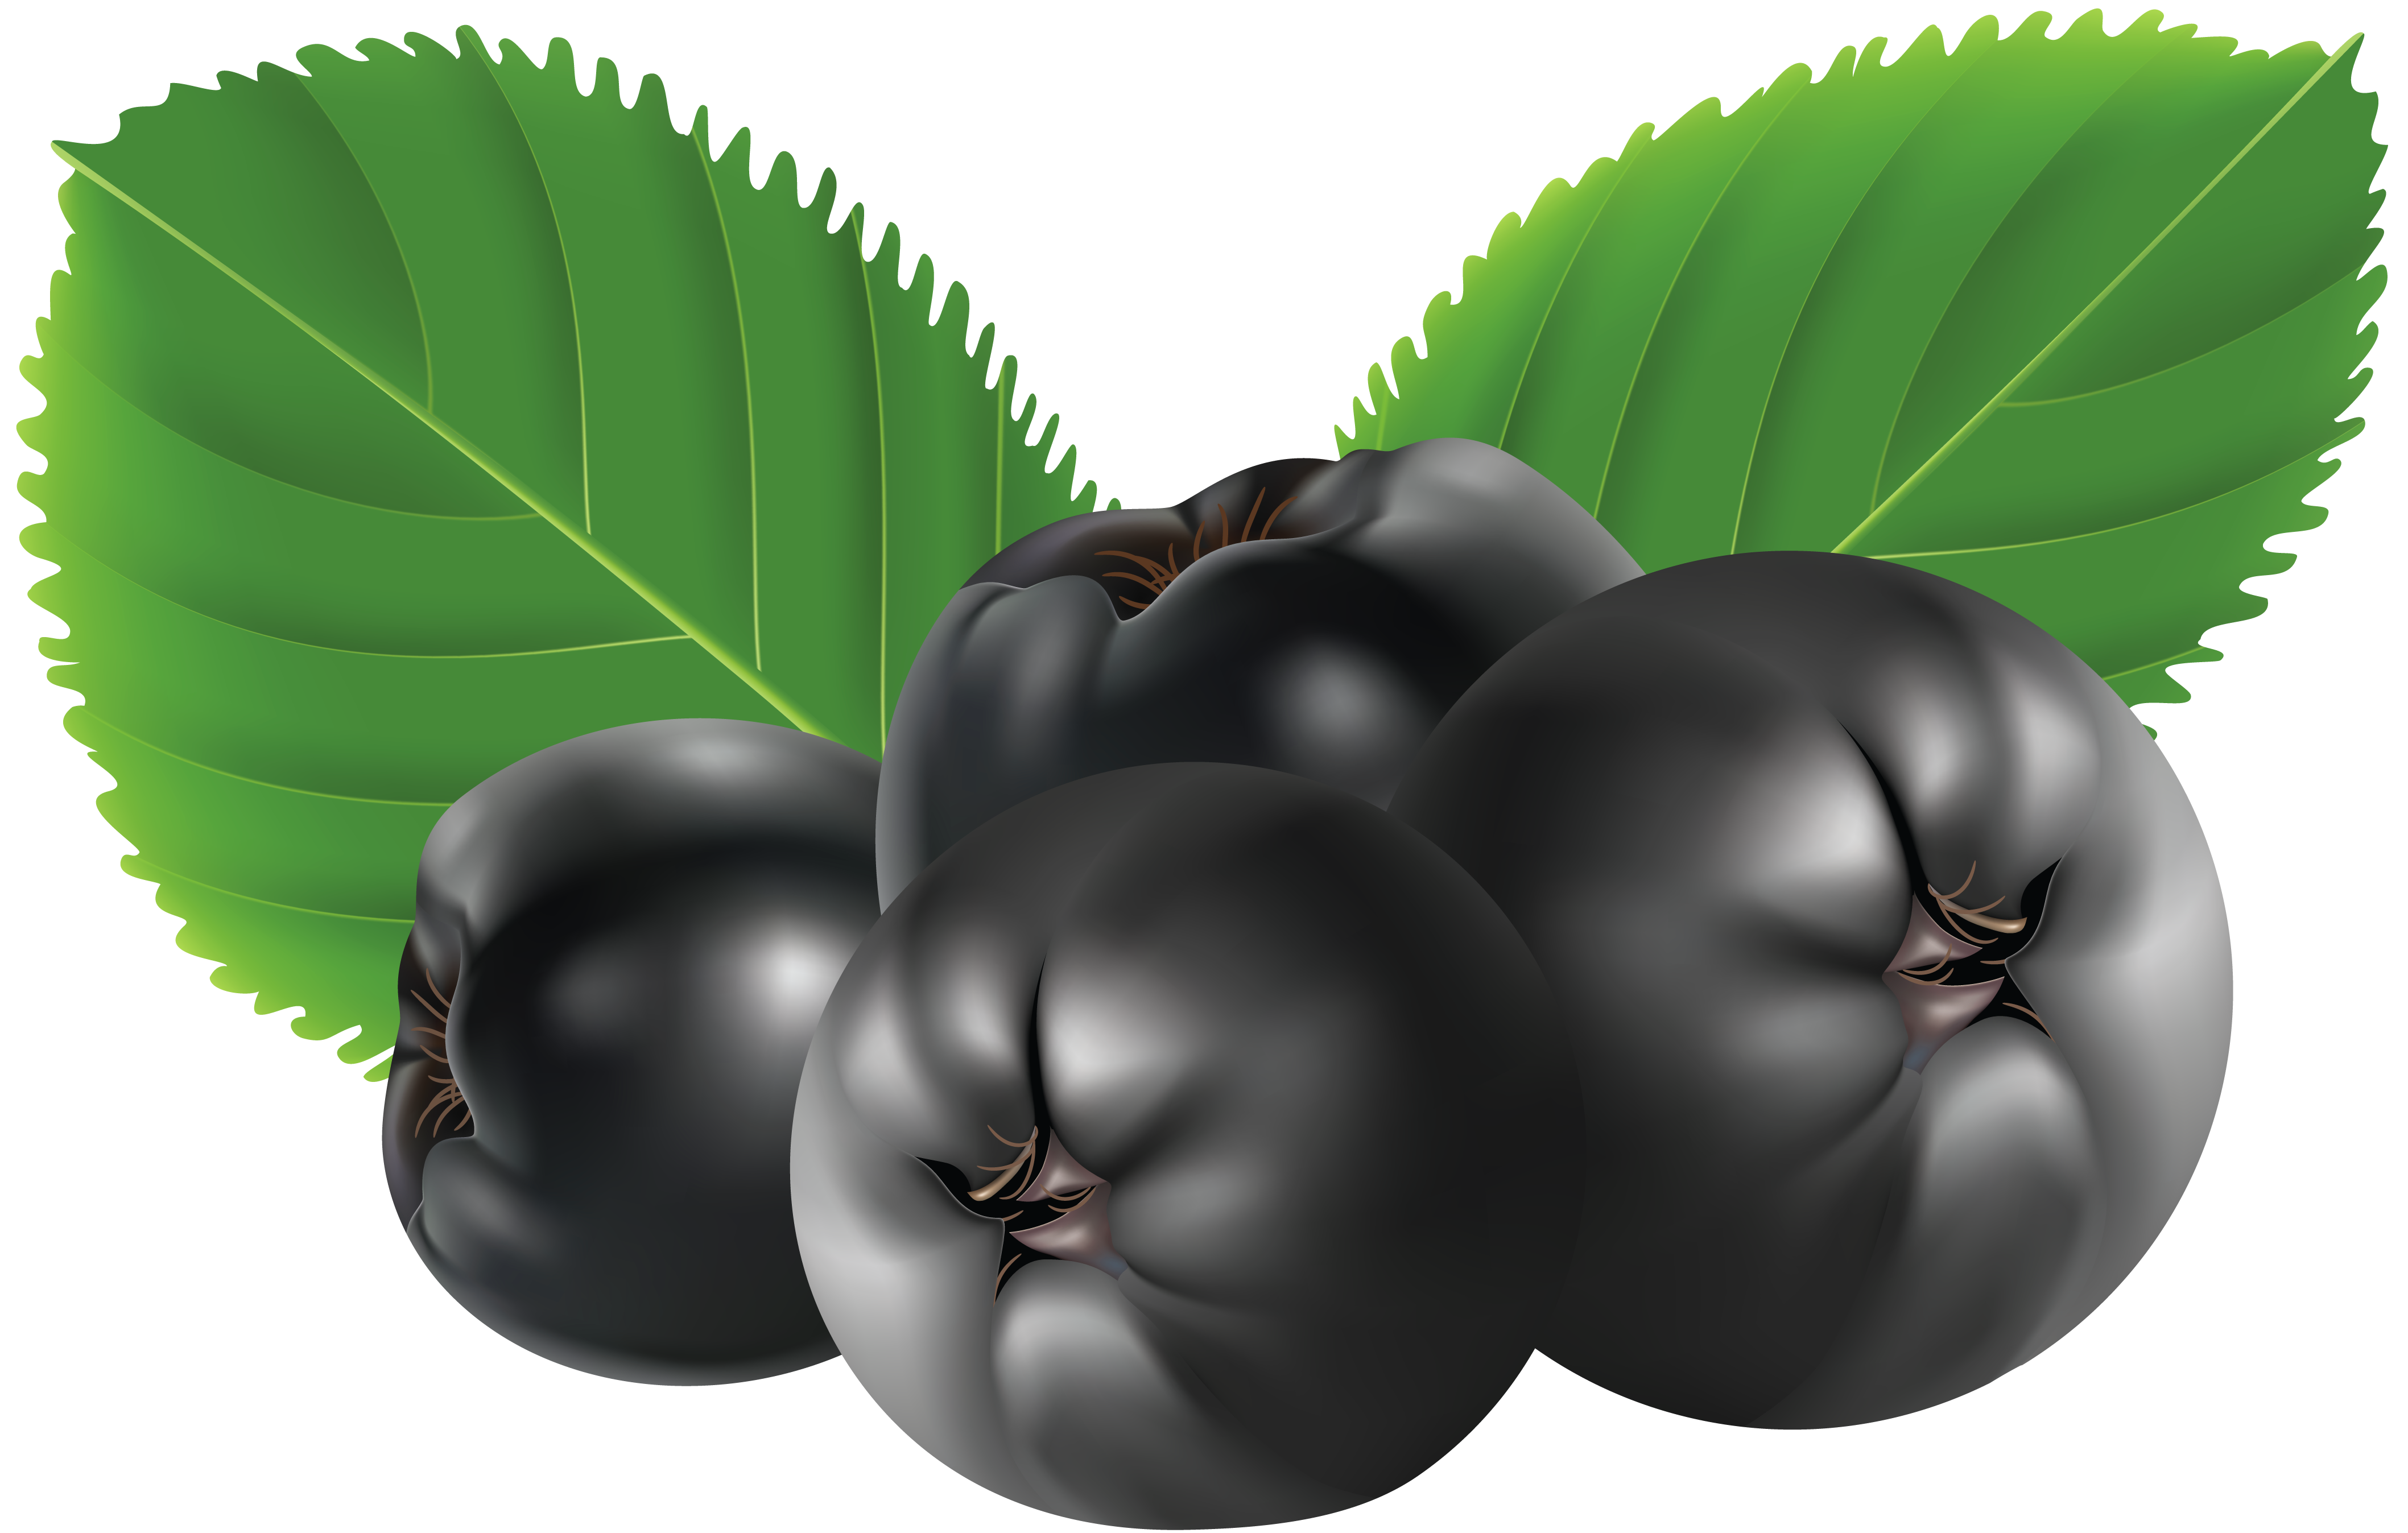 Blueberries clipart transparent background. Blueberry png picture gallery